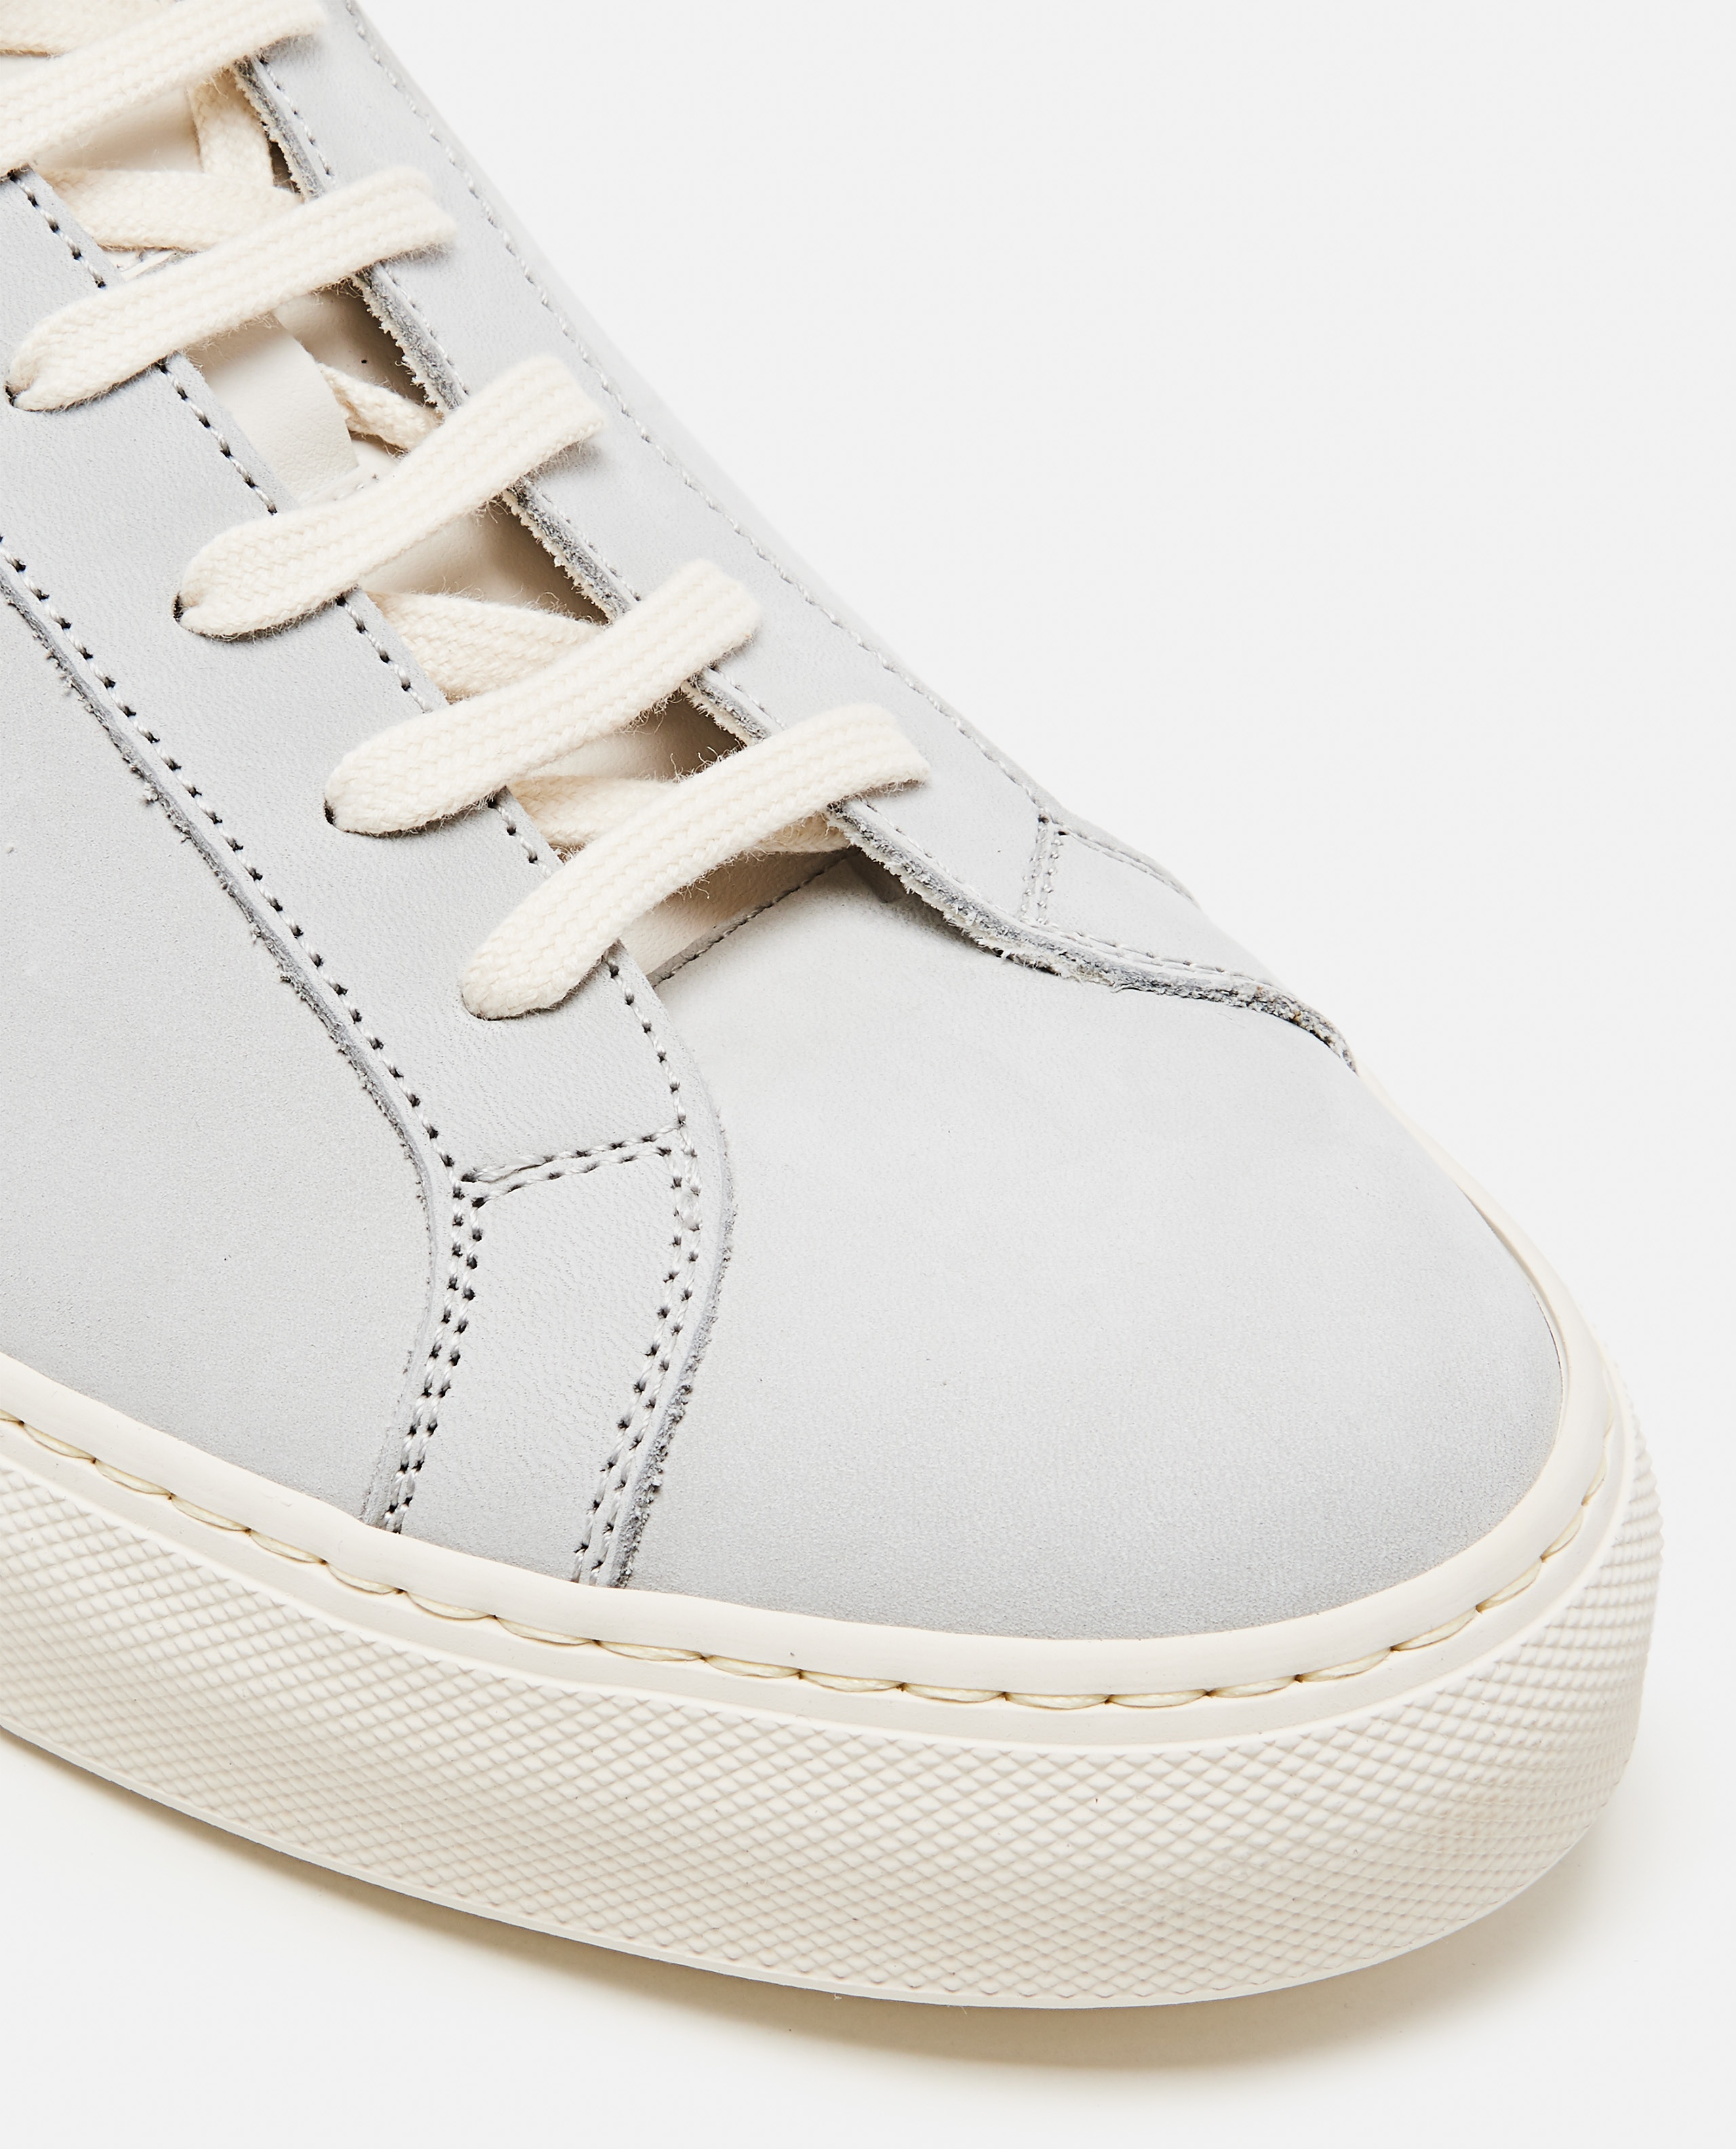 Sneakers Achilles Low in pelle nabuk Uomo Common Projects 000305520044800 4